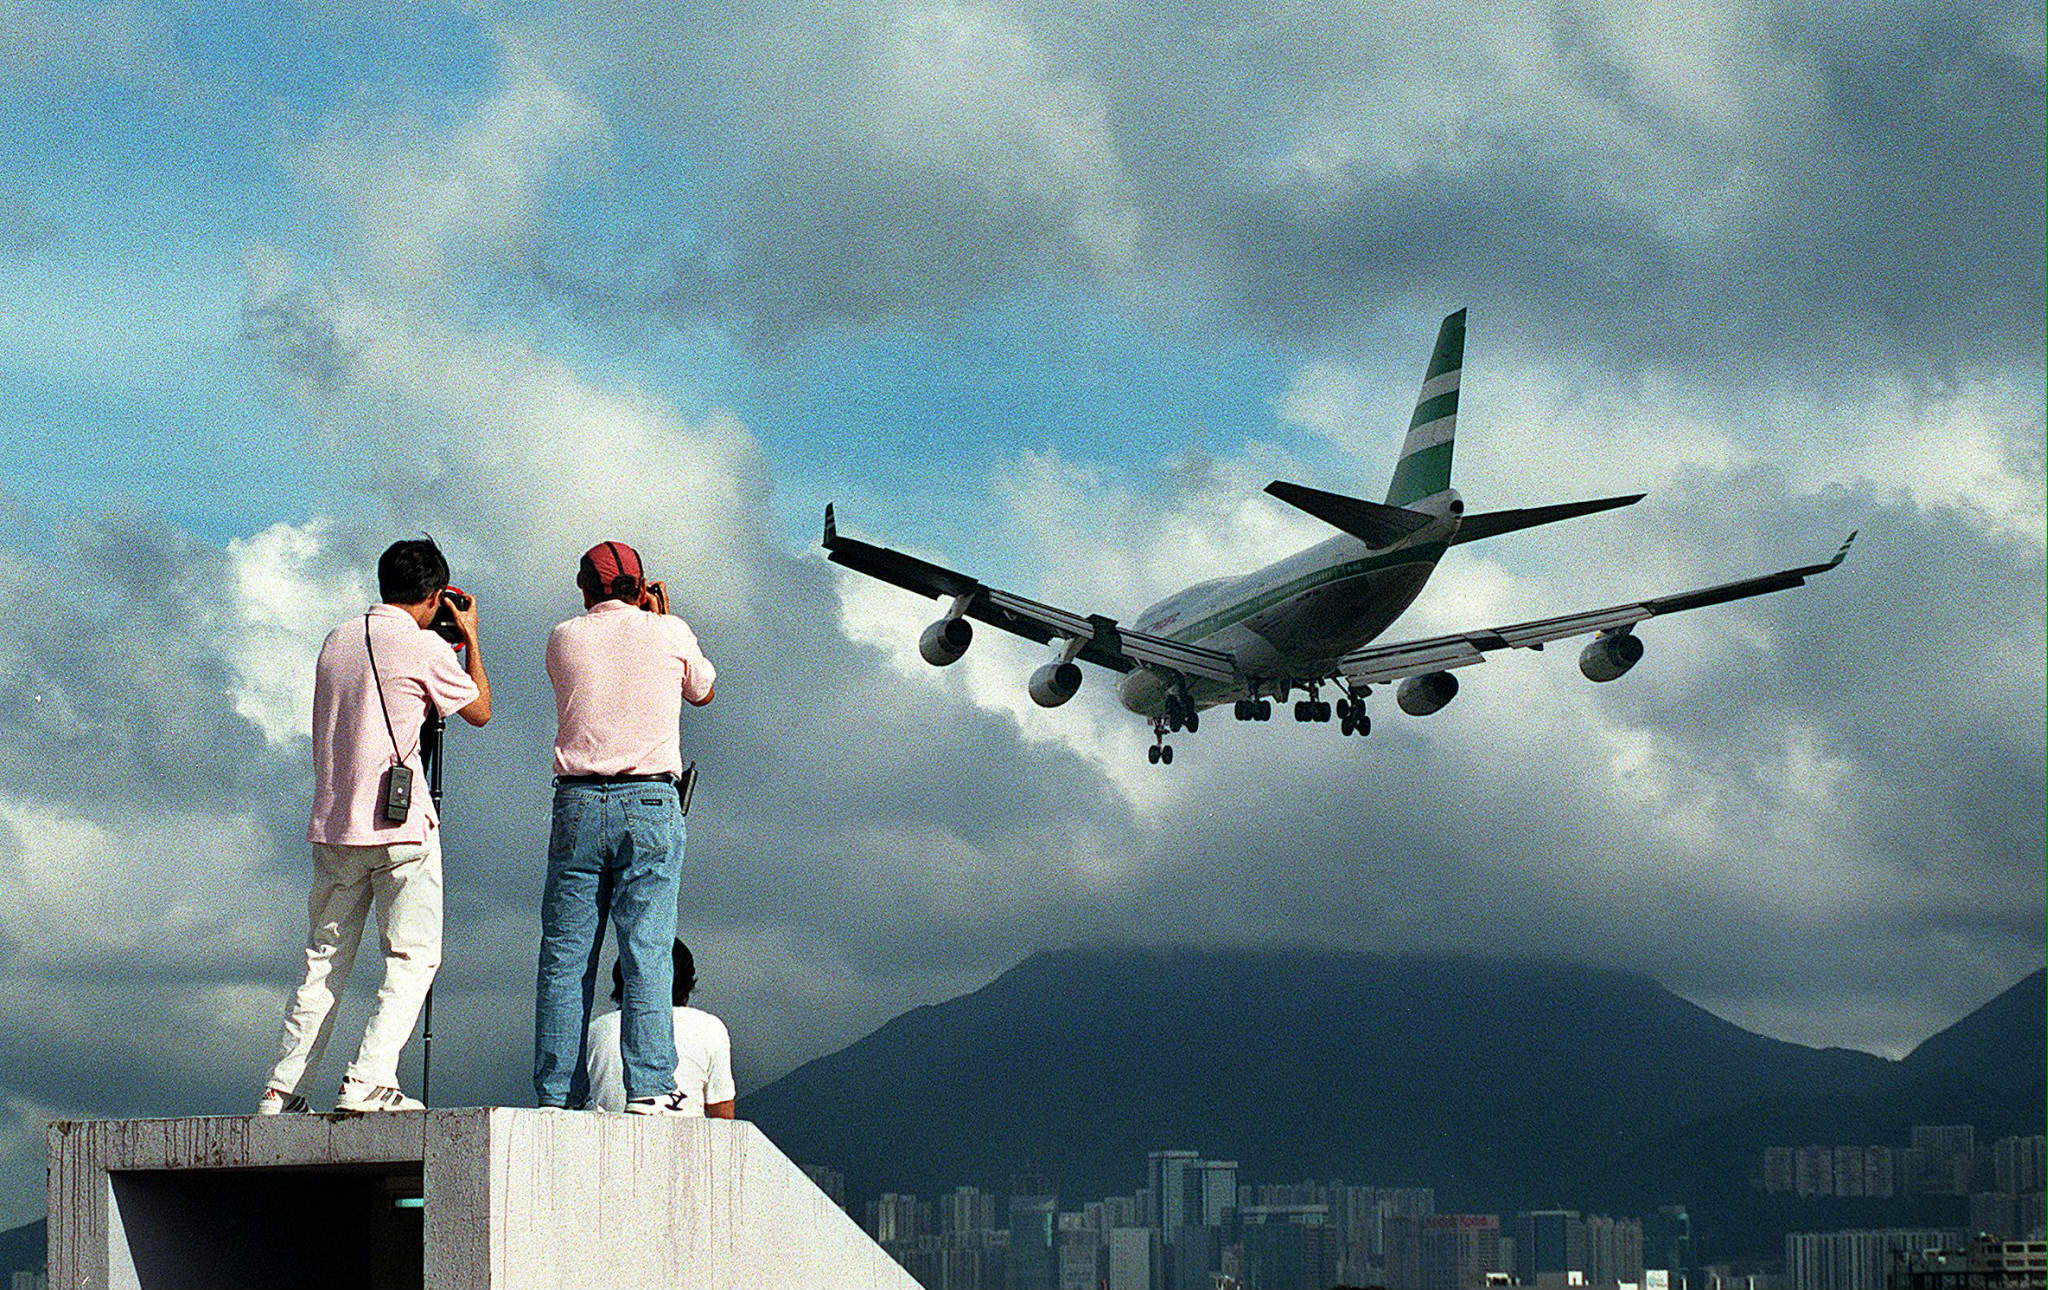 See the Crazy Landings at Kai Tak, the Legendary Airport That Closed 20 Years Ago